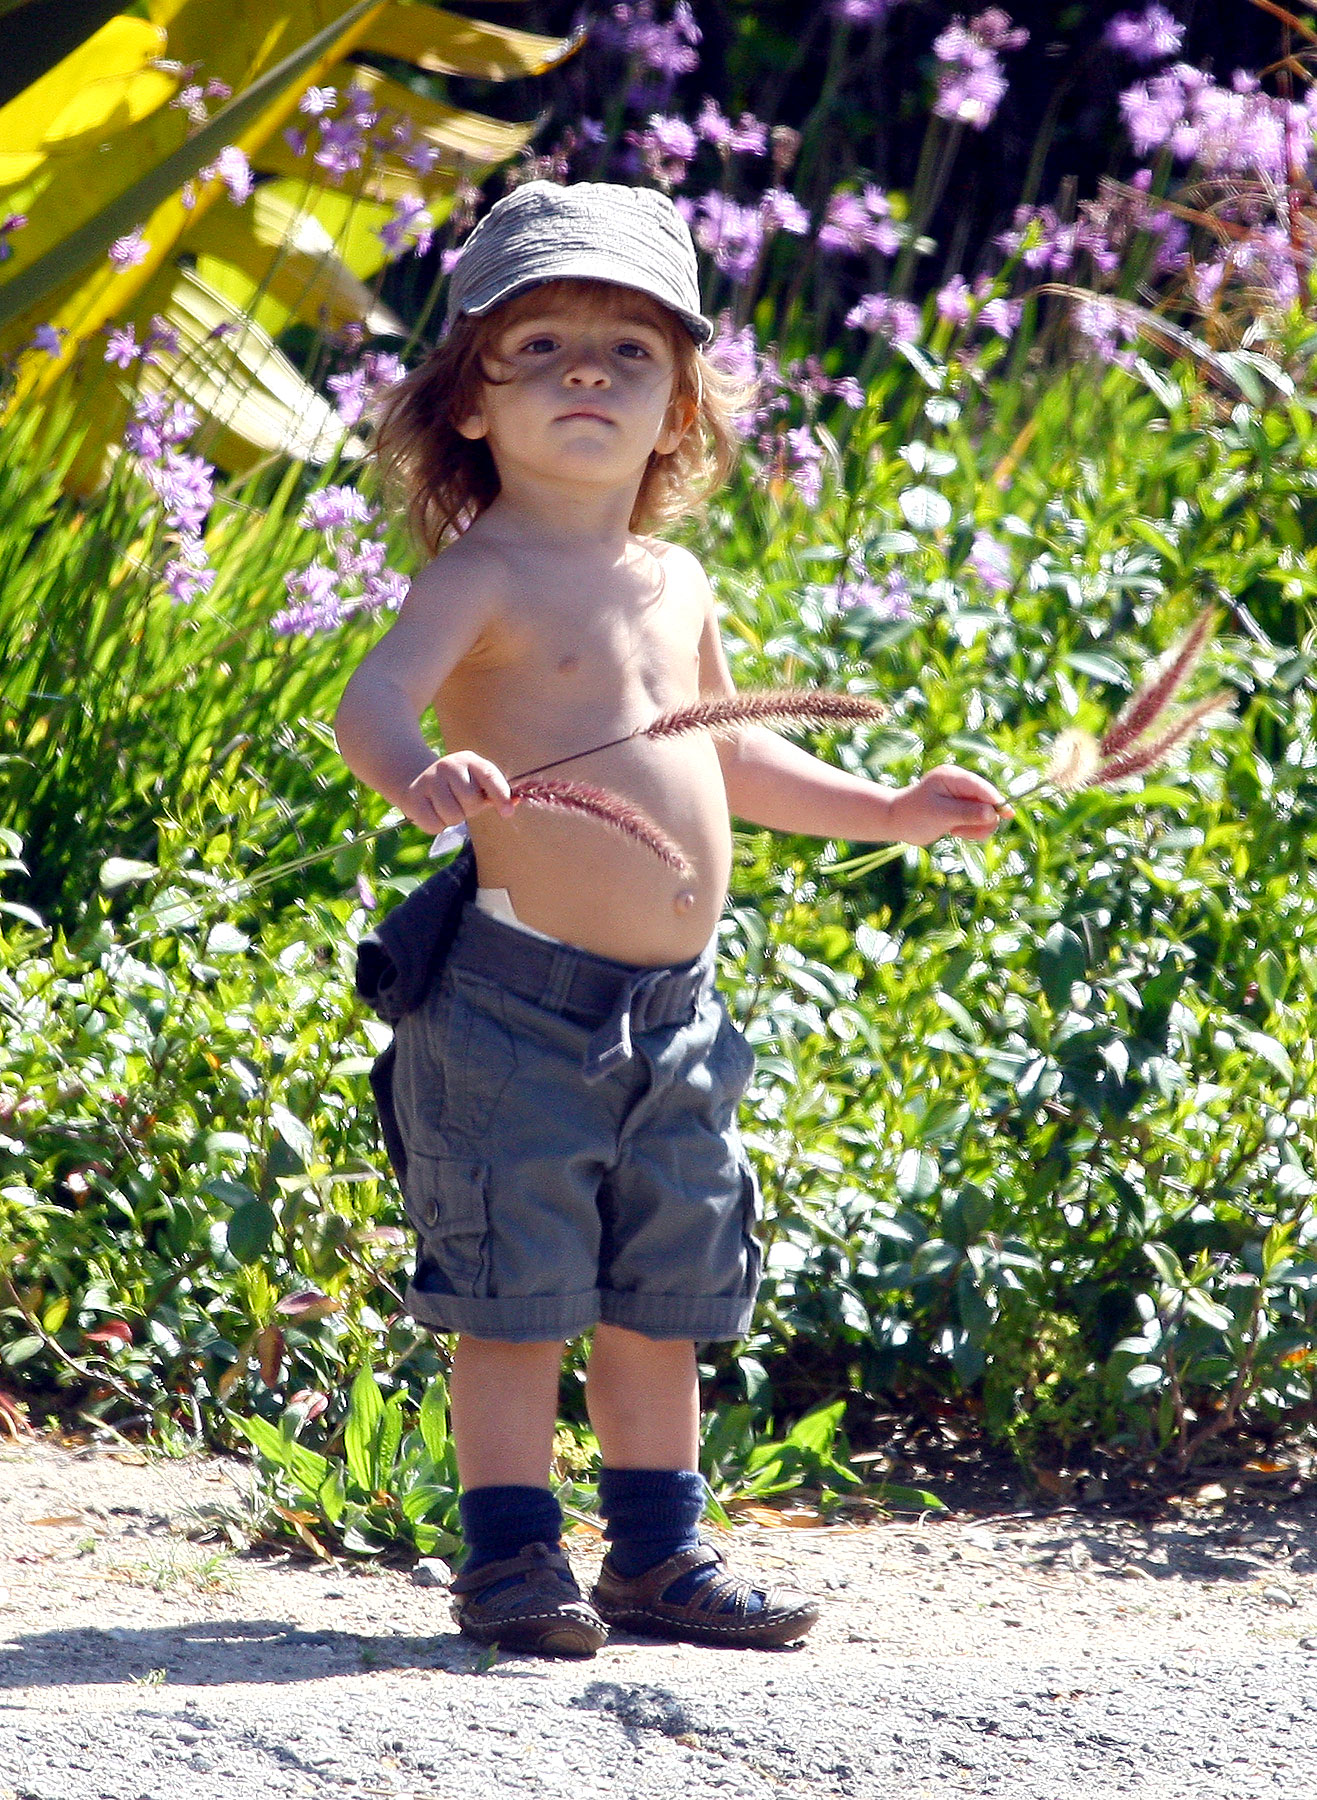 Matthew McConaughey's Son Shows Us That Shirtlessness Is Genetic (PHOTOS)